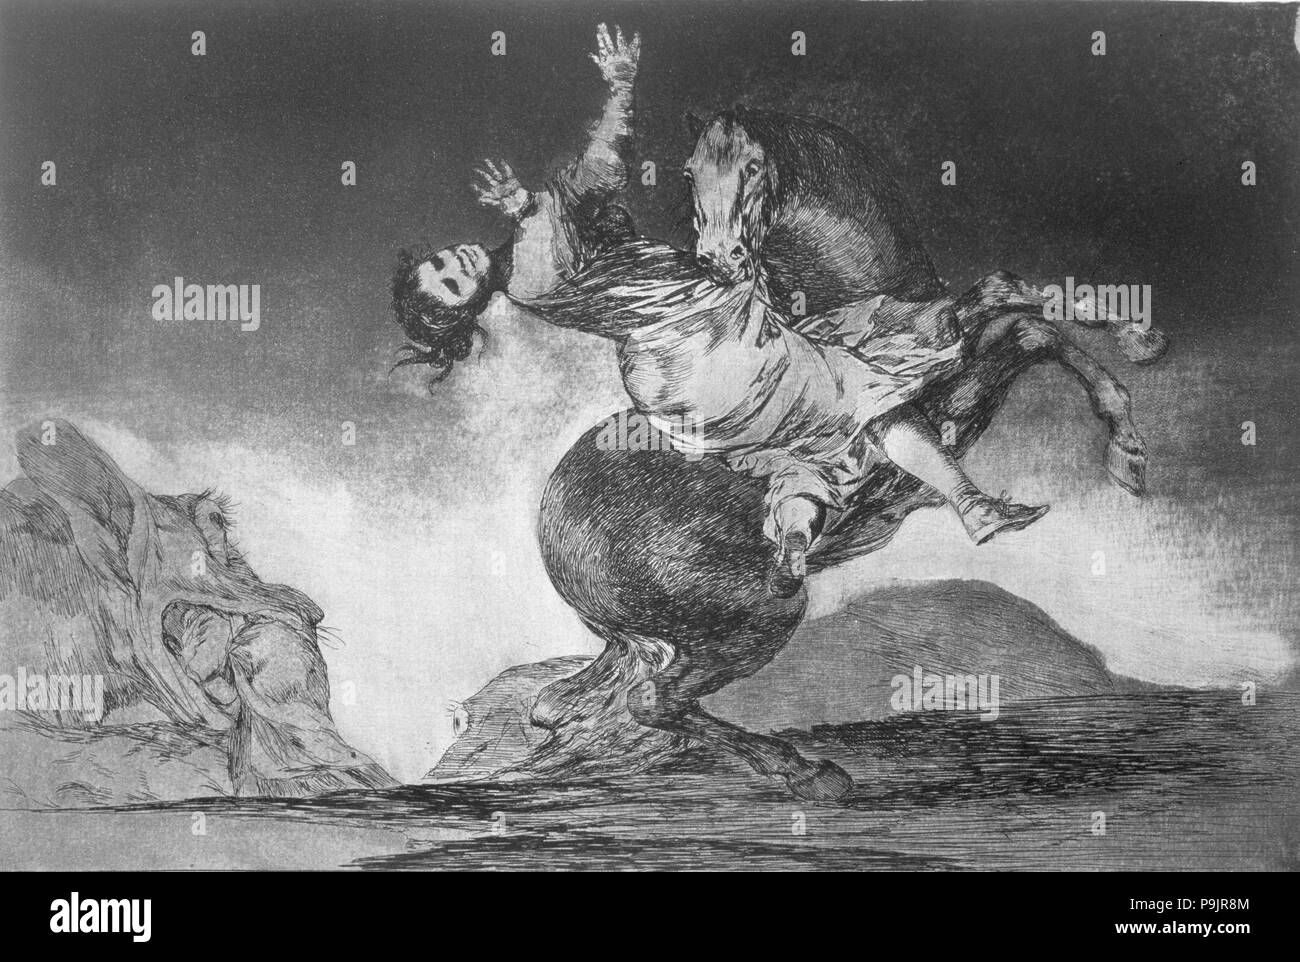 The Proverbs or The Follies, series of etchings by Francisco de Goya, plate 10: 'El caballo rapto… Stock Photo